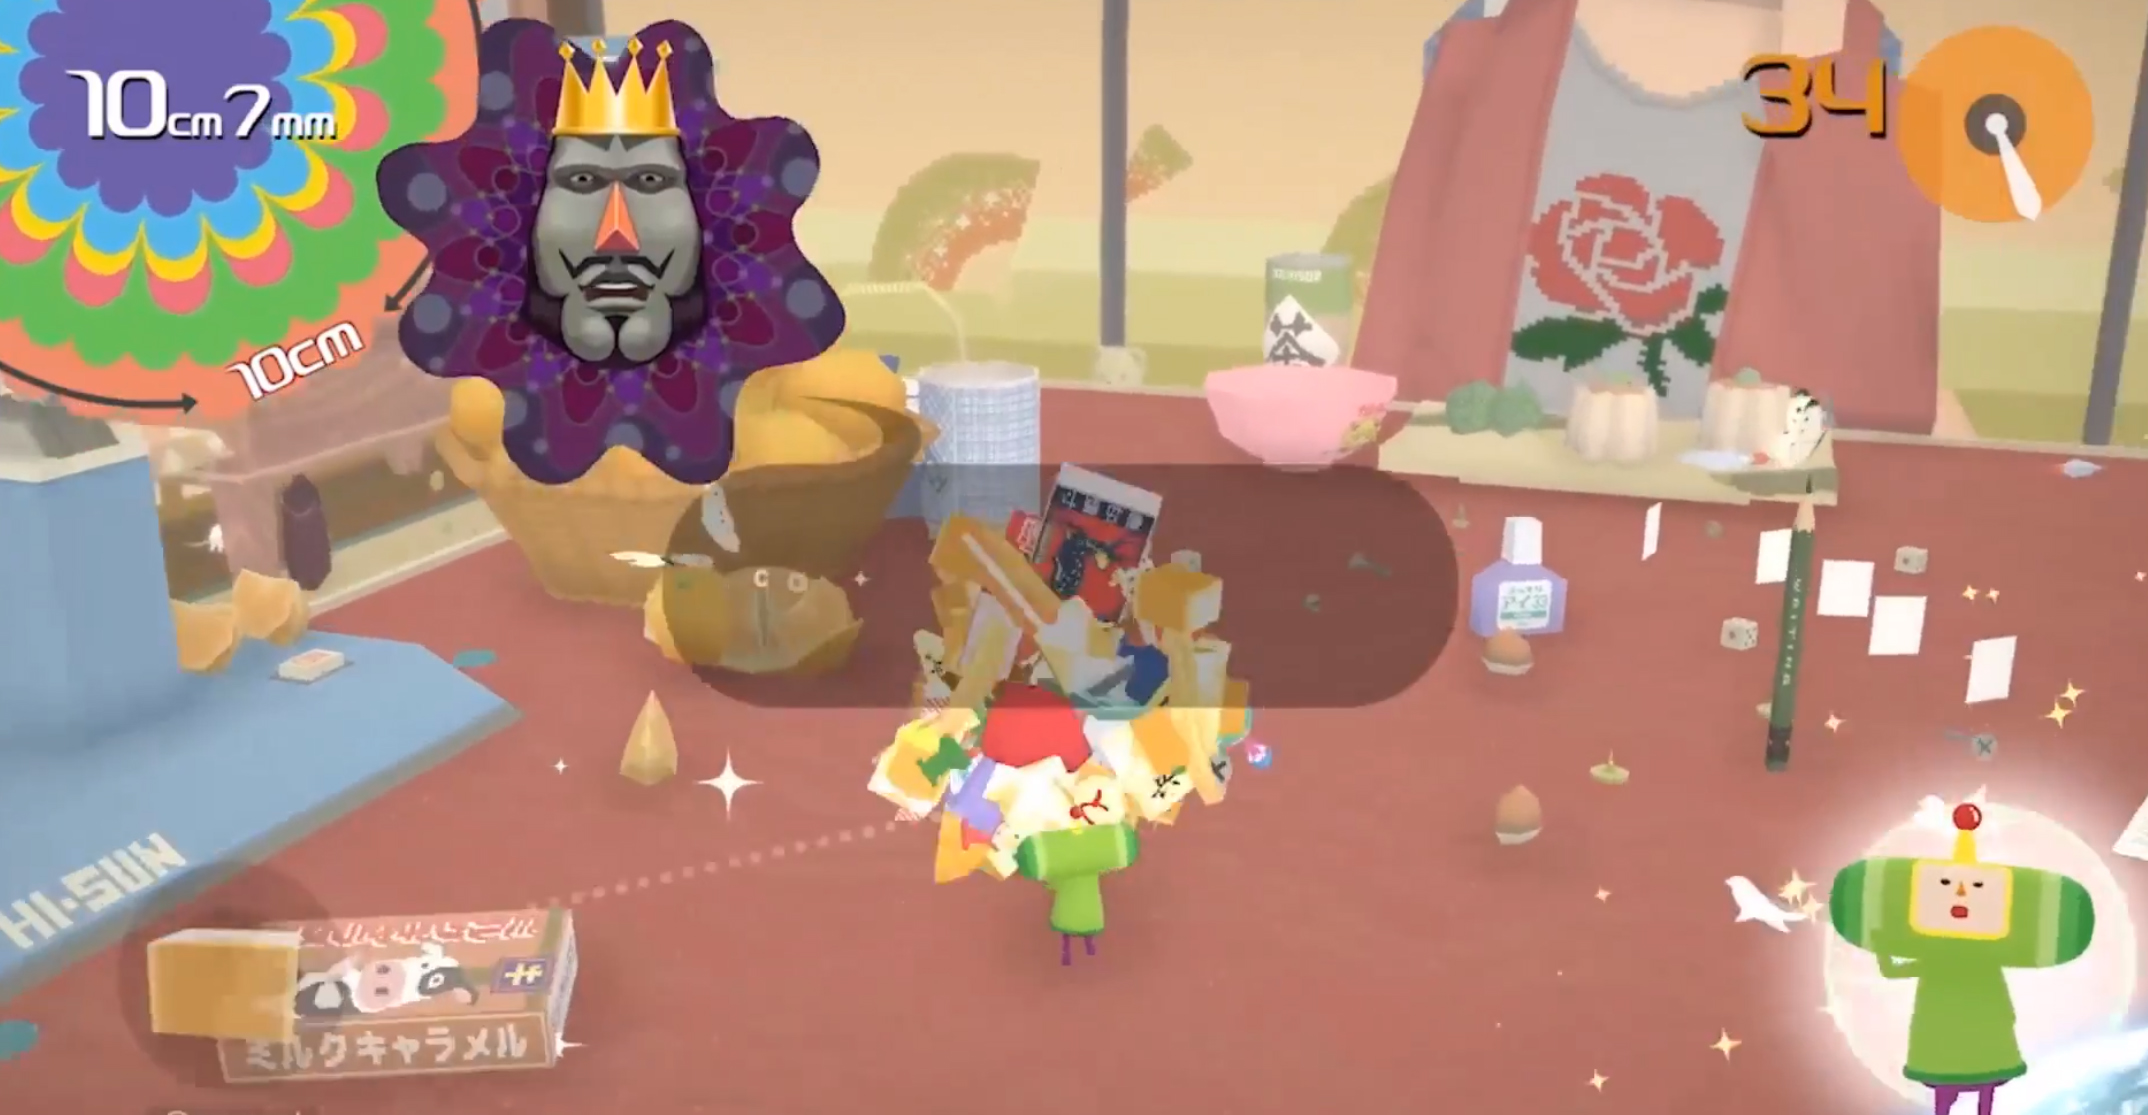 Katamari Damacy Reroll Remasters the Original for Switch